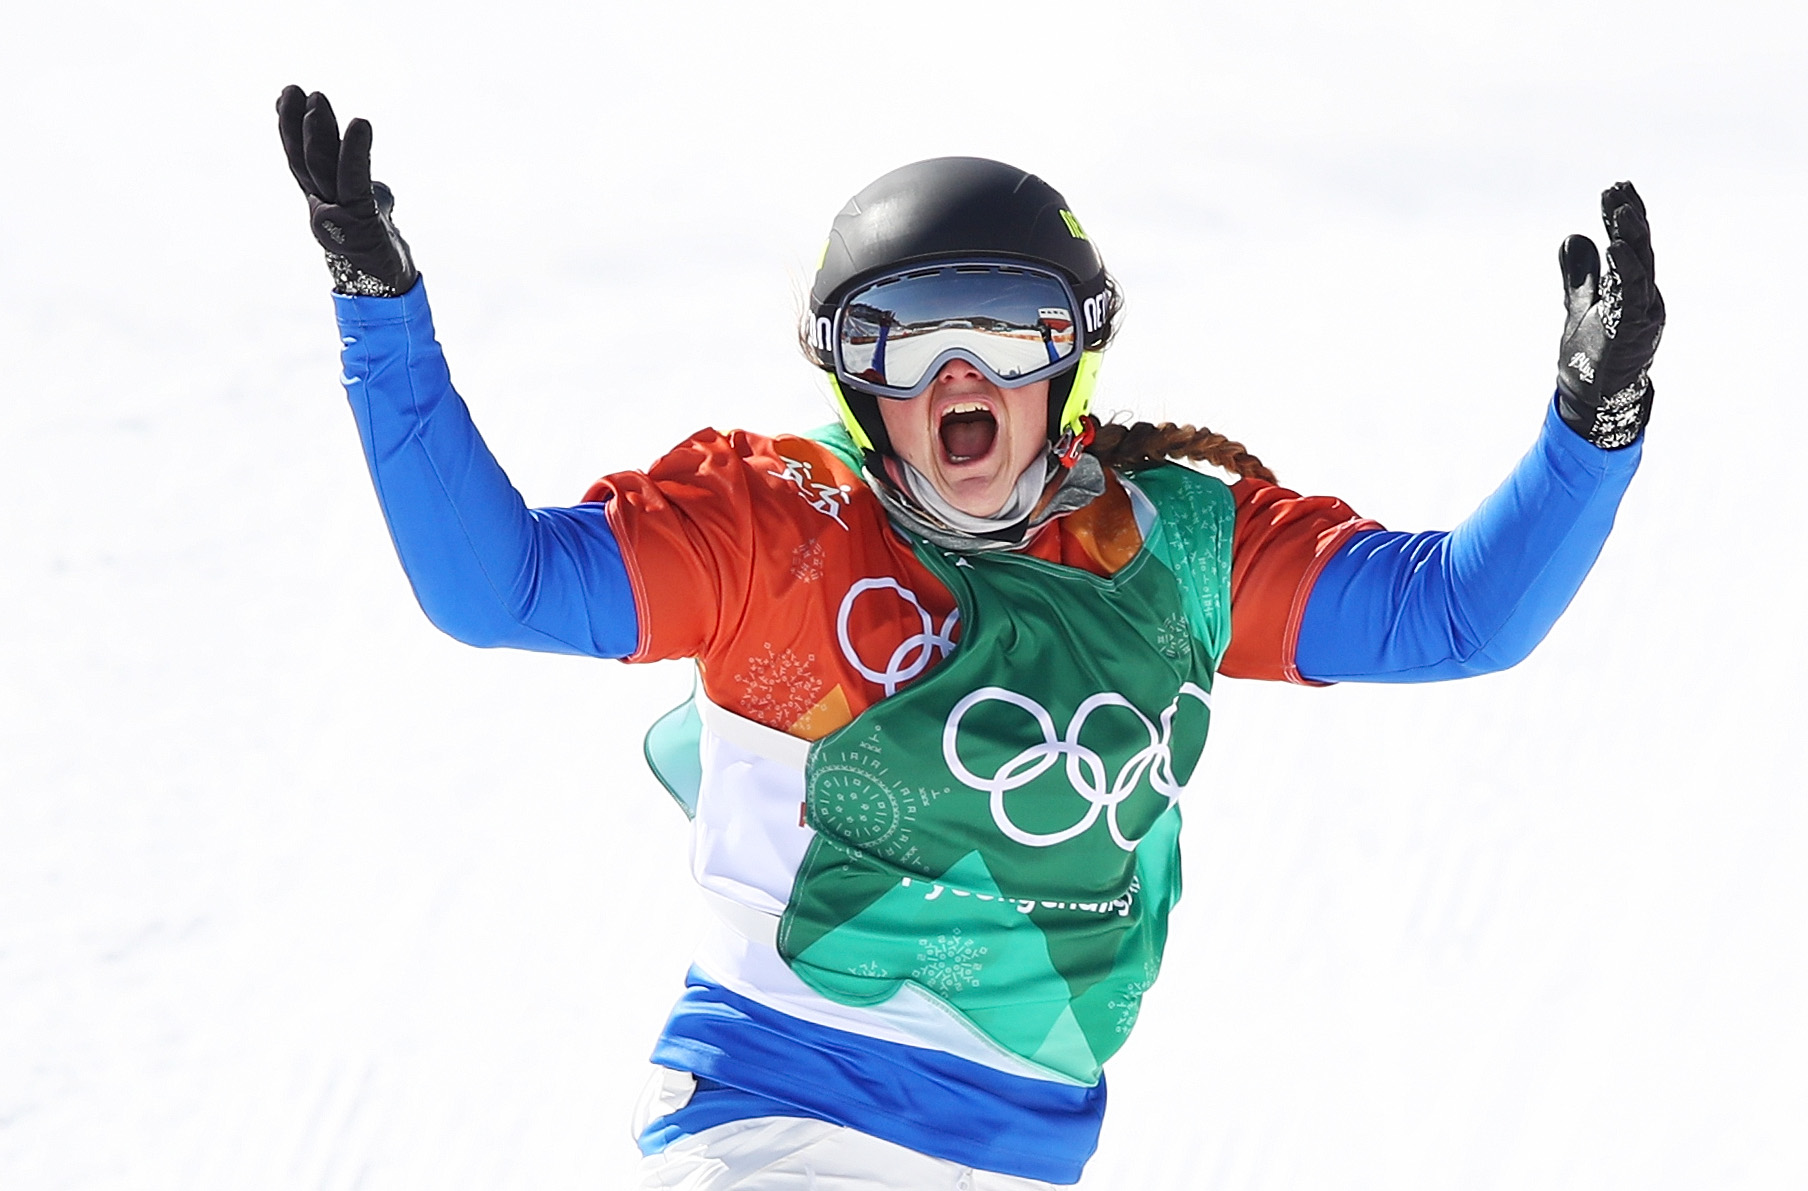 Michela Moioli of Italy celebrates winning gold in the Ladies' Snowboard Cross gold medal at the PyeongChang 2018 Winter Olympic Games on Feb. 16, 2018.